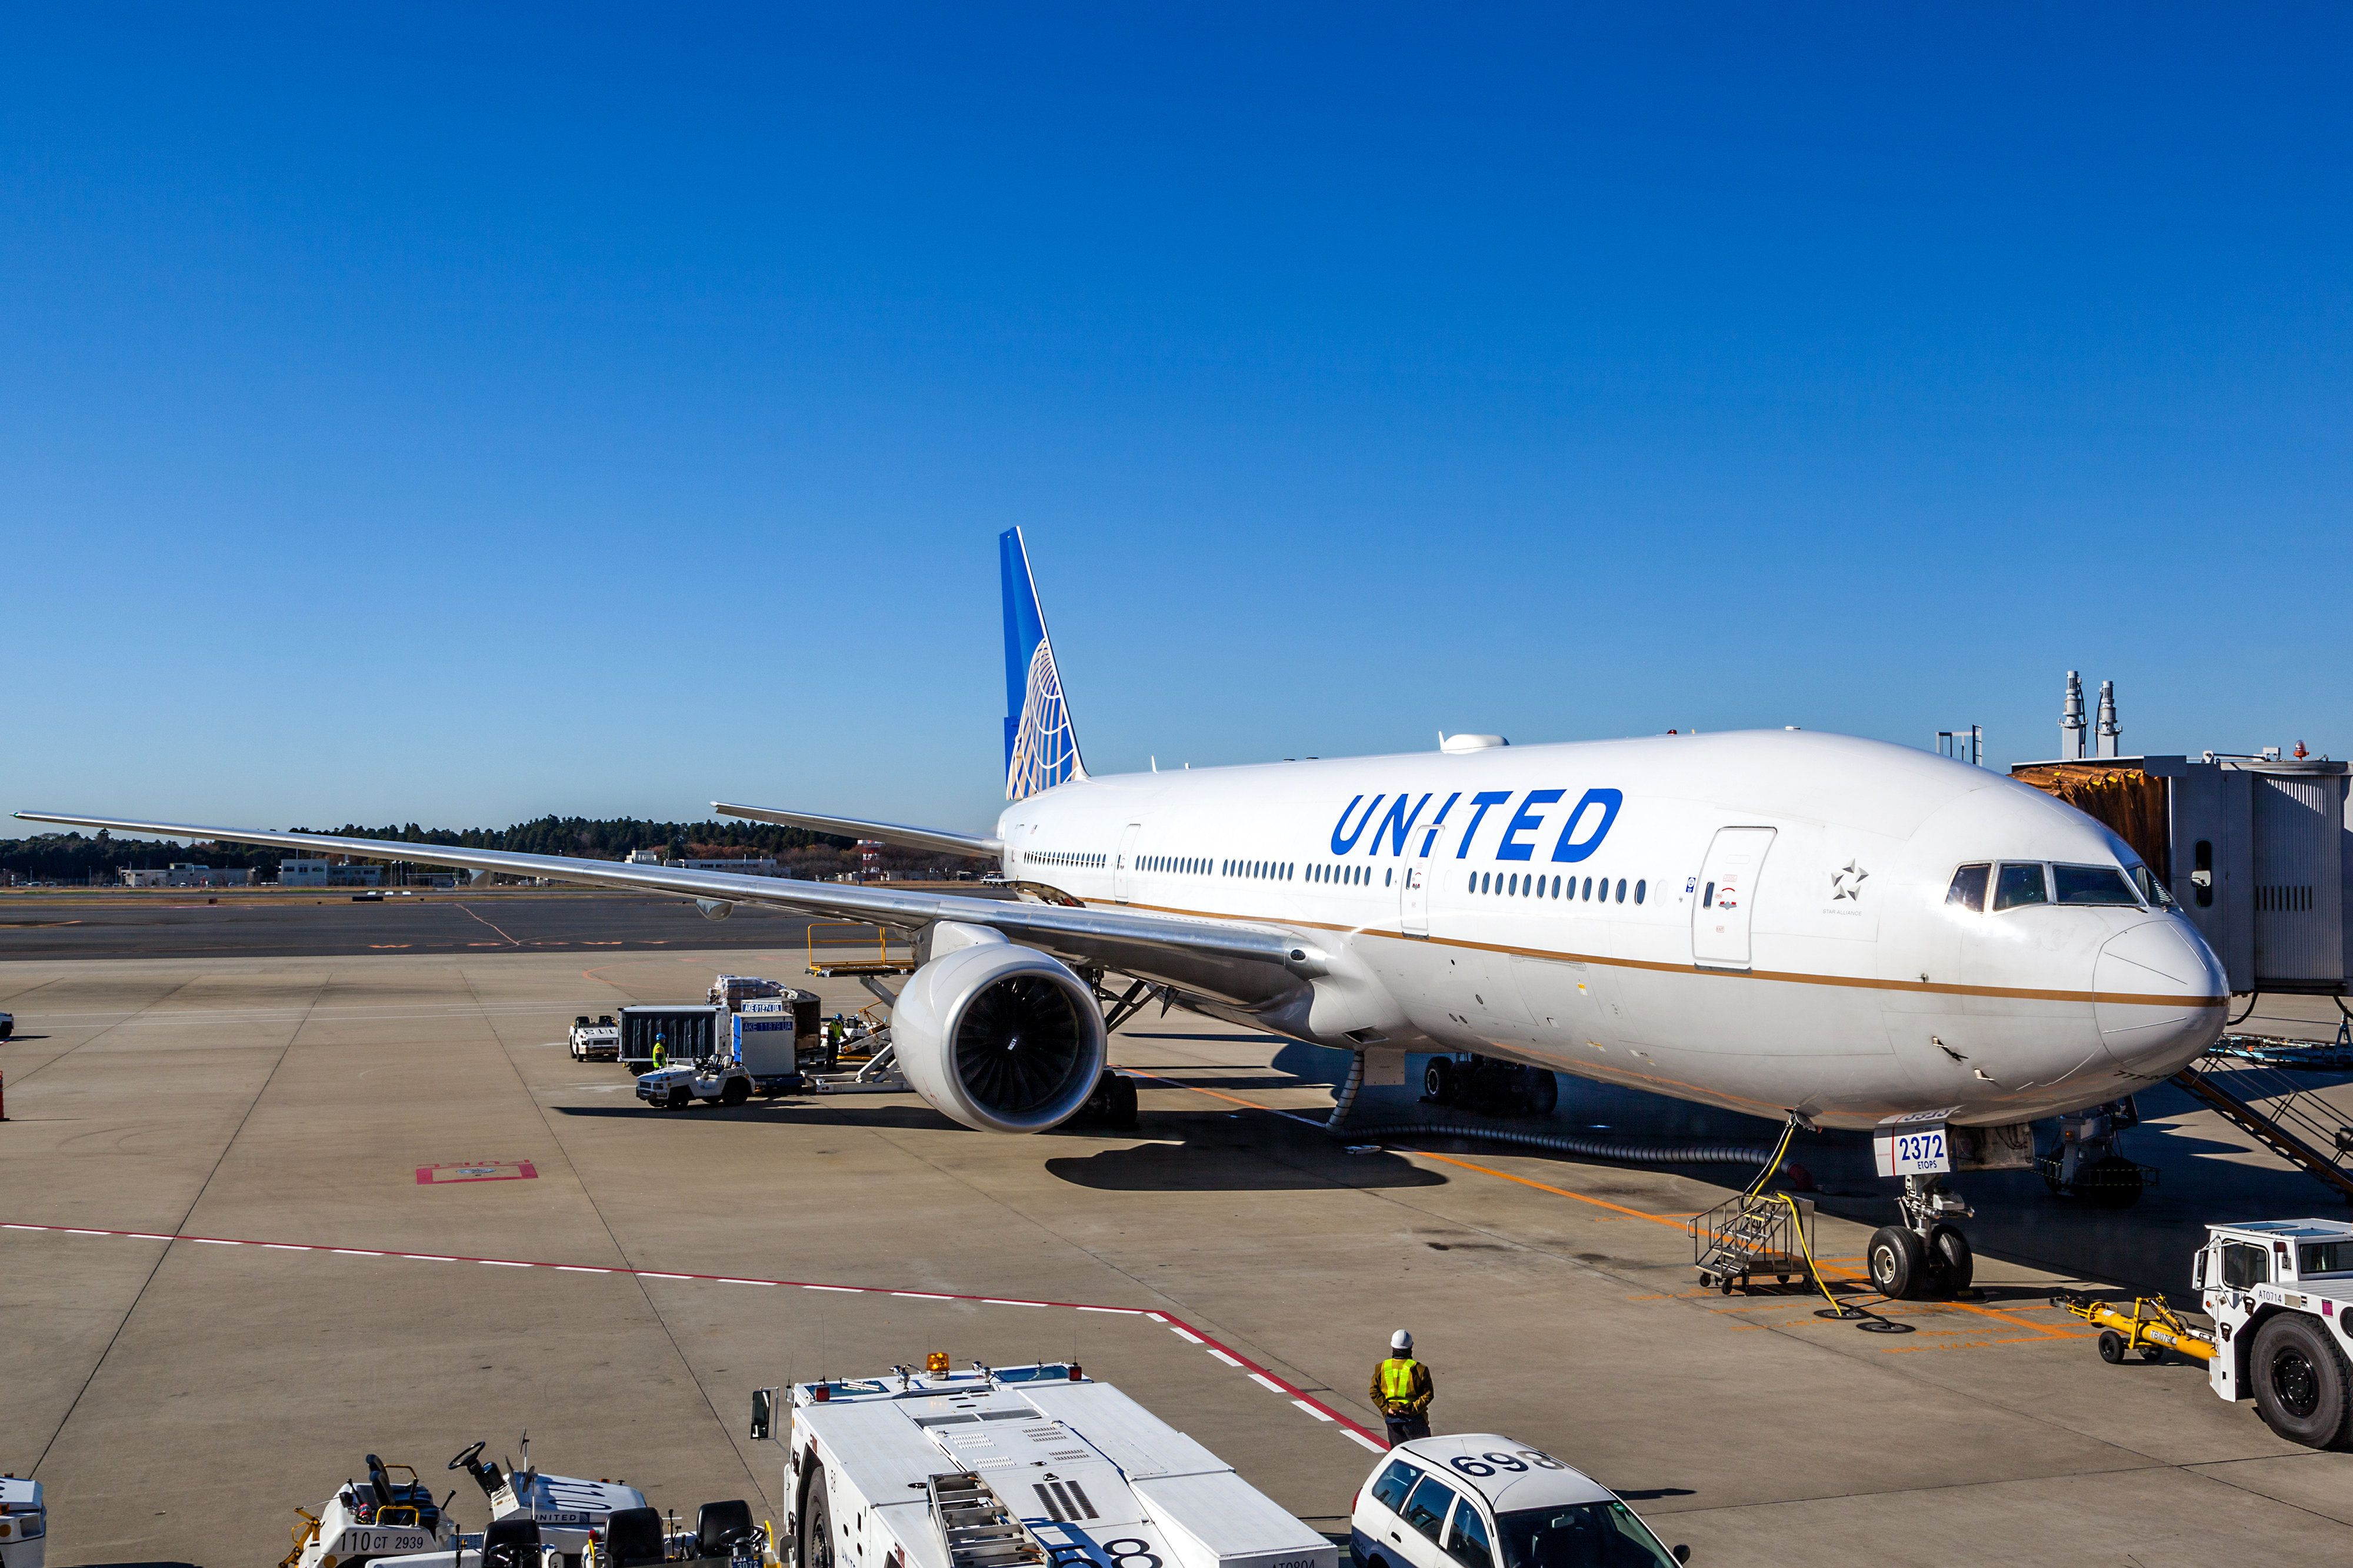 Tokyo, Japan - December 5, 2014: A United Airlines plane being serviced on the tarmac of Narita Airport. After its merger with Continental in 2010, United has become the world's largest airline.